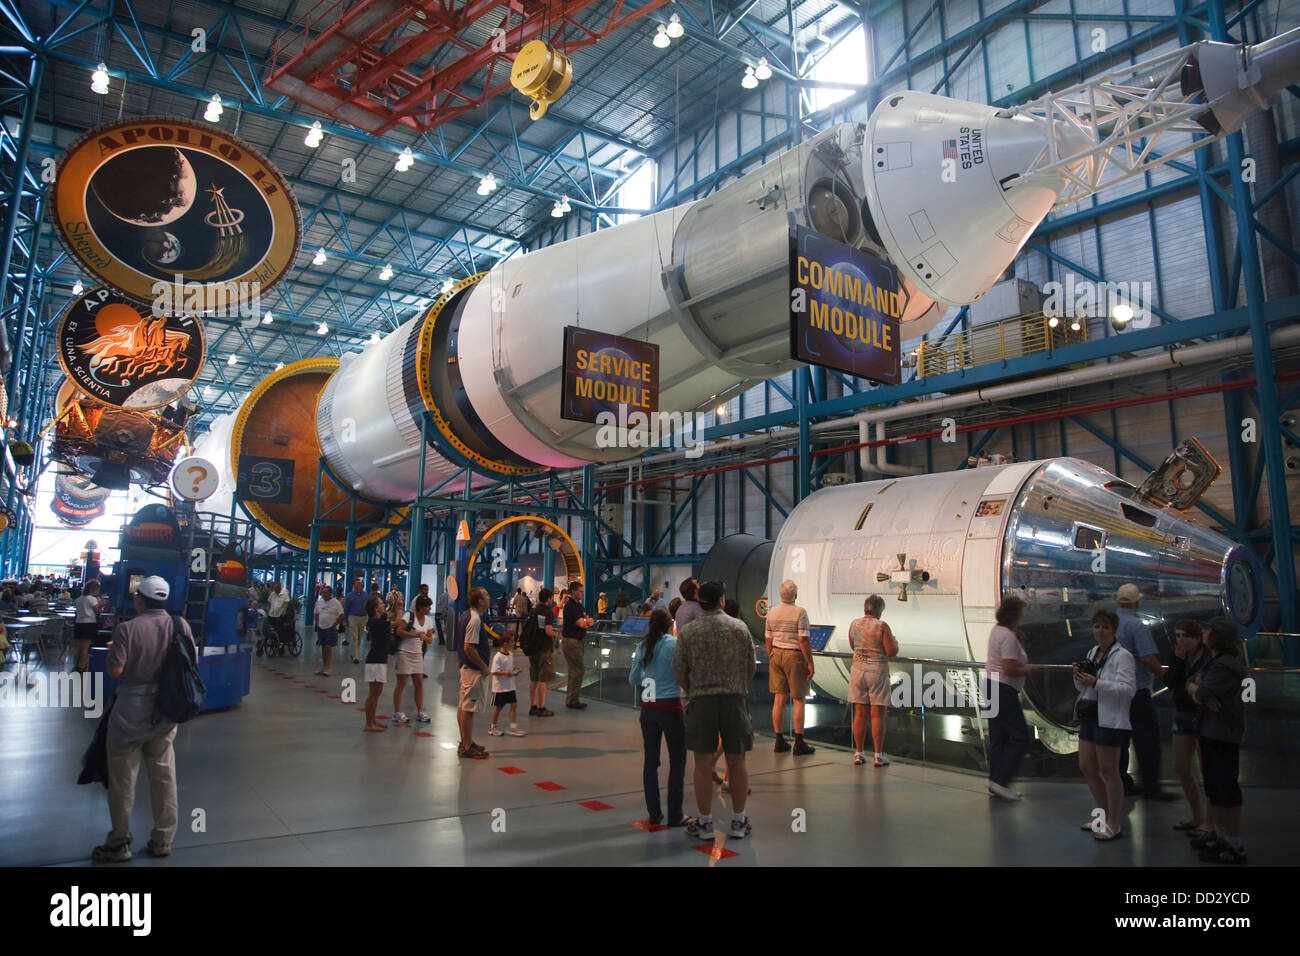 apollo 11 movie kennedy space center - photo #13